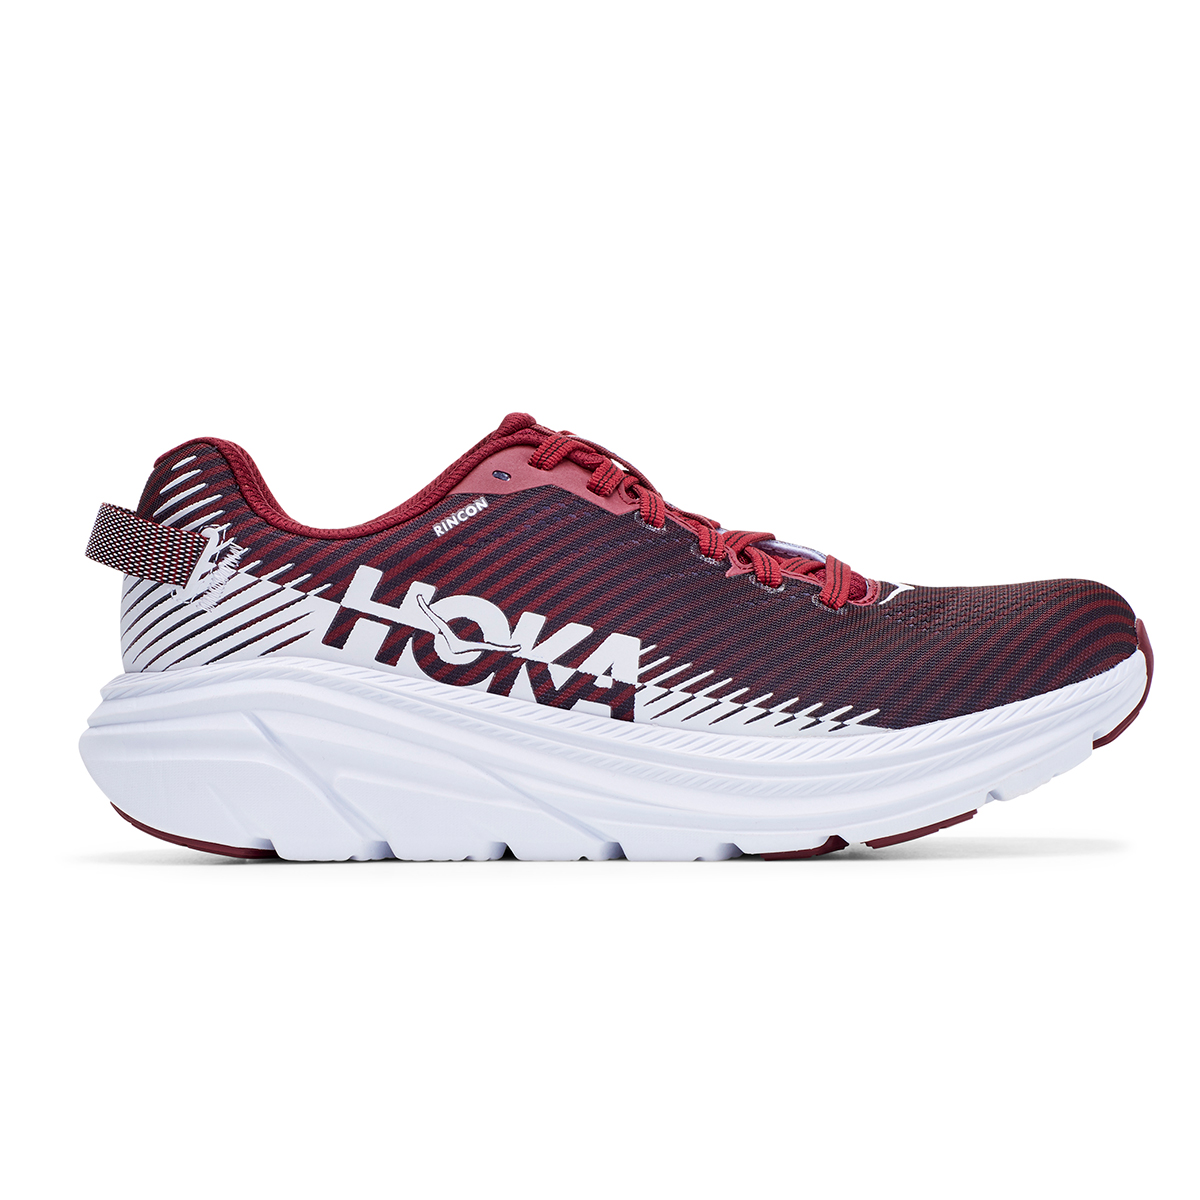 Women's Hoka One One Rincon 2 Running Shoe - Color: Cordovan/White - Size: 5 - Width: Regular, Cordovan/White, large, image 1